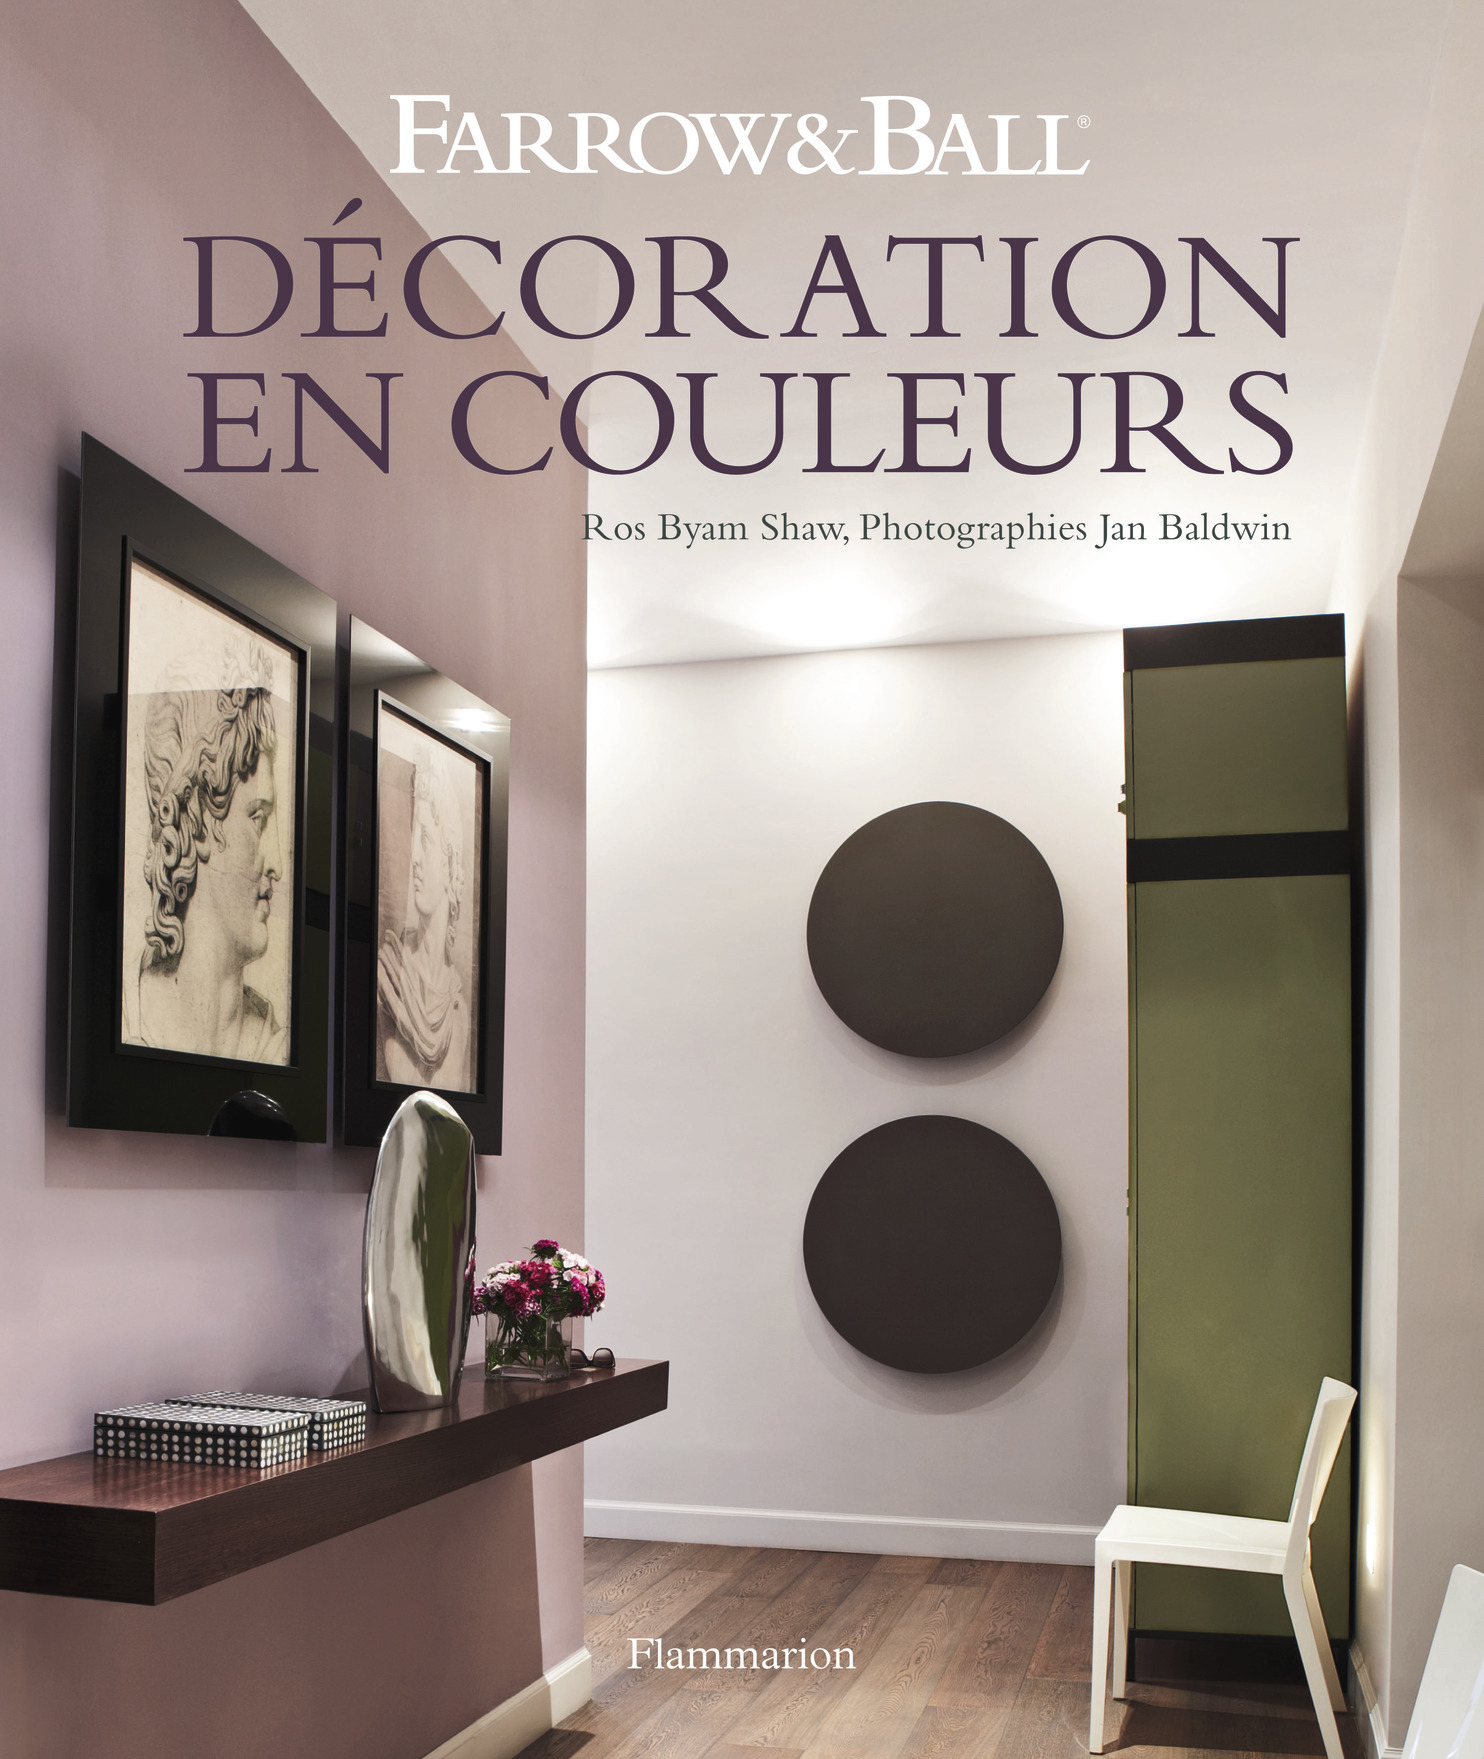 DECORATION EN COULEURS